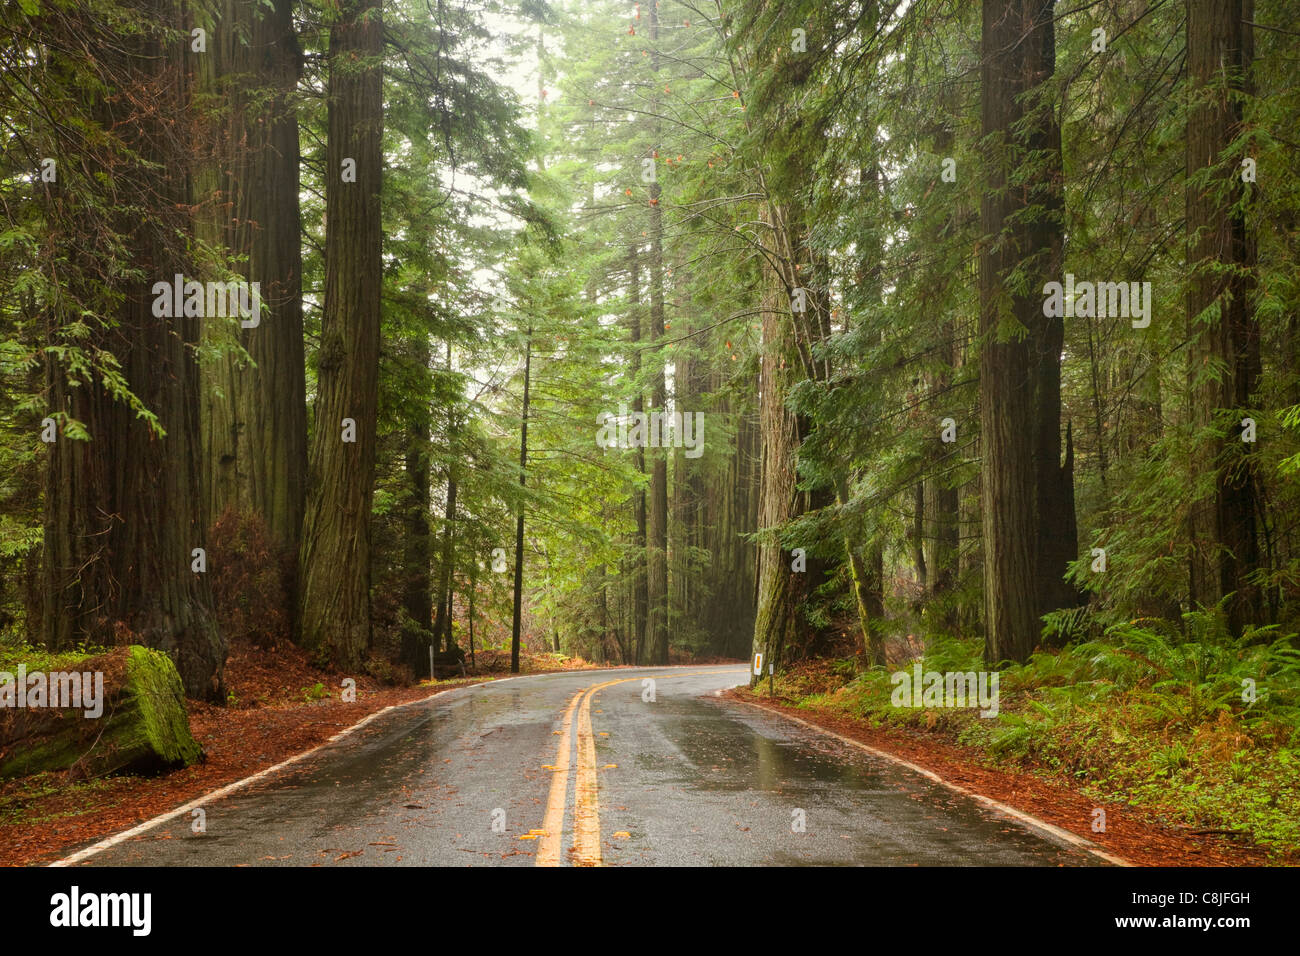 CA00903-00...CALIFORNIA - Avenue of the Giants through Humboldt Redwoods State Park. - Stock Image